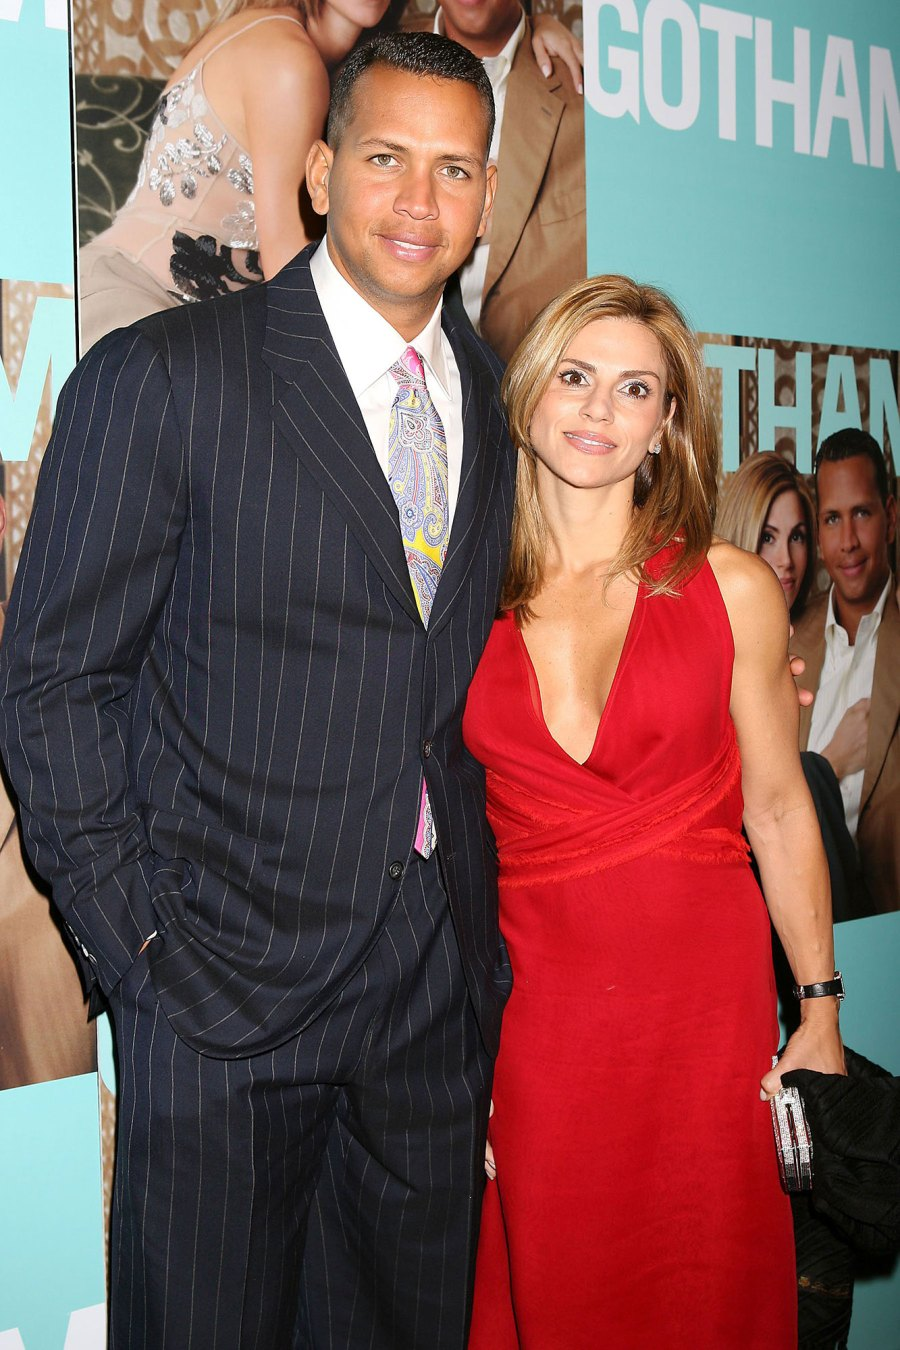 Alex Rodriguez and Cynthia Scurtis Ups and Downs